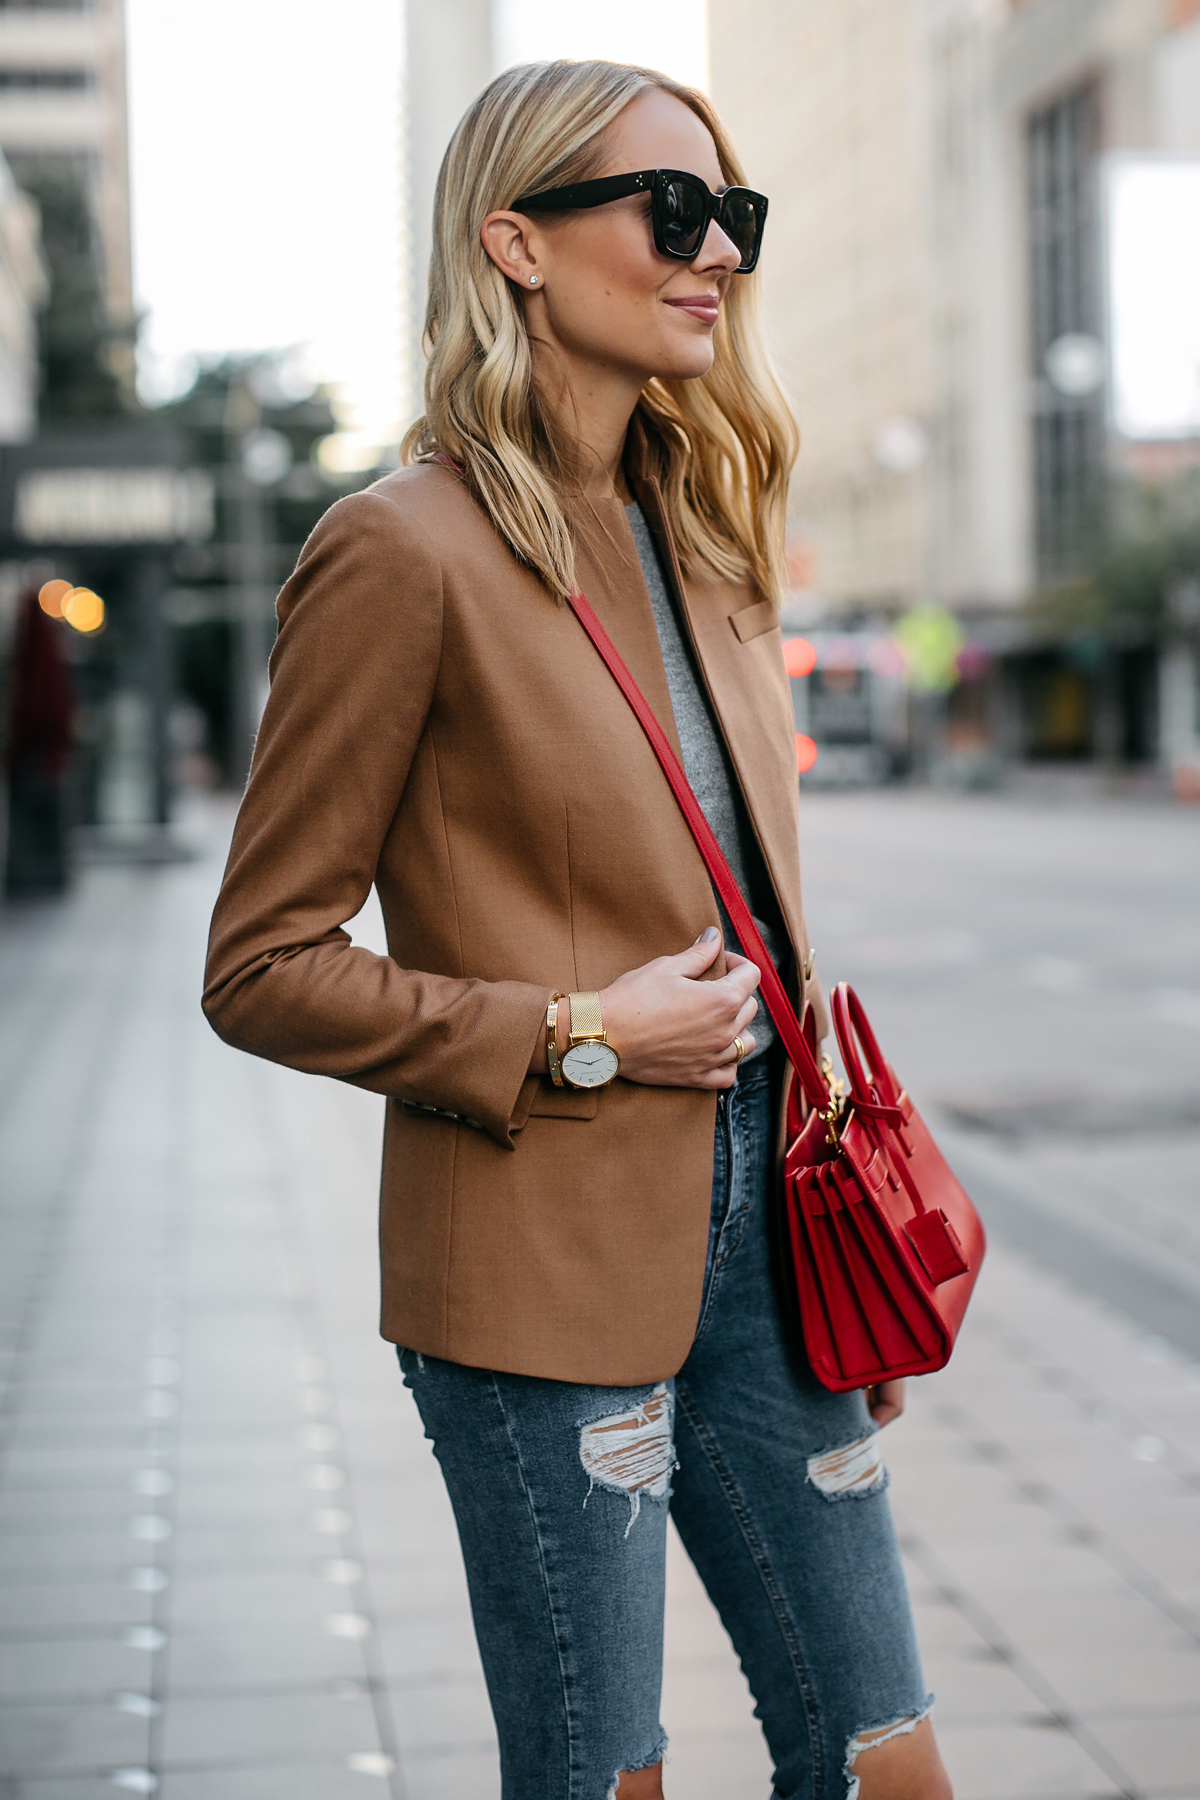 Blonde Woman Wearing Jcrew Camel Blazer Grey Sweater Ripped Denim Jeans Red Bag Fashion Jackson Dallas Blogger Fashion Blogger Street Style